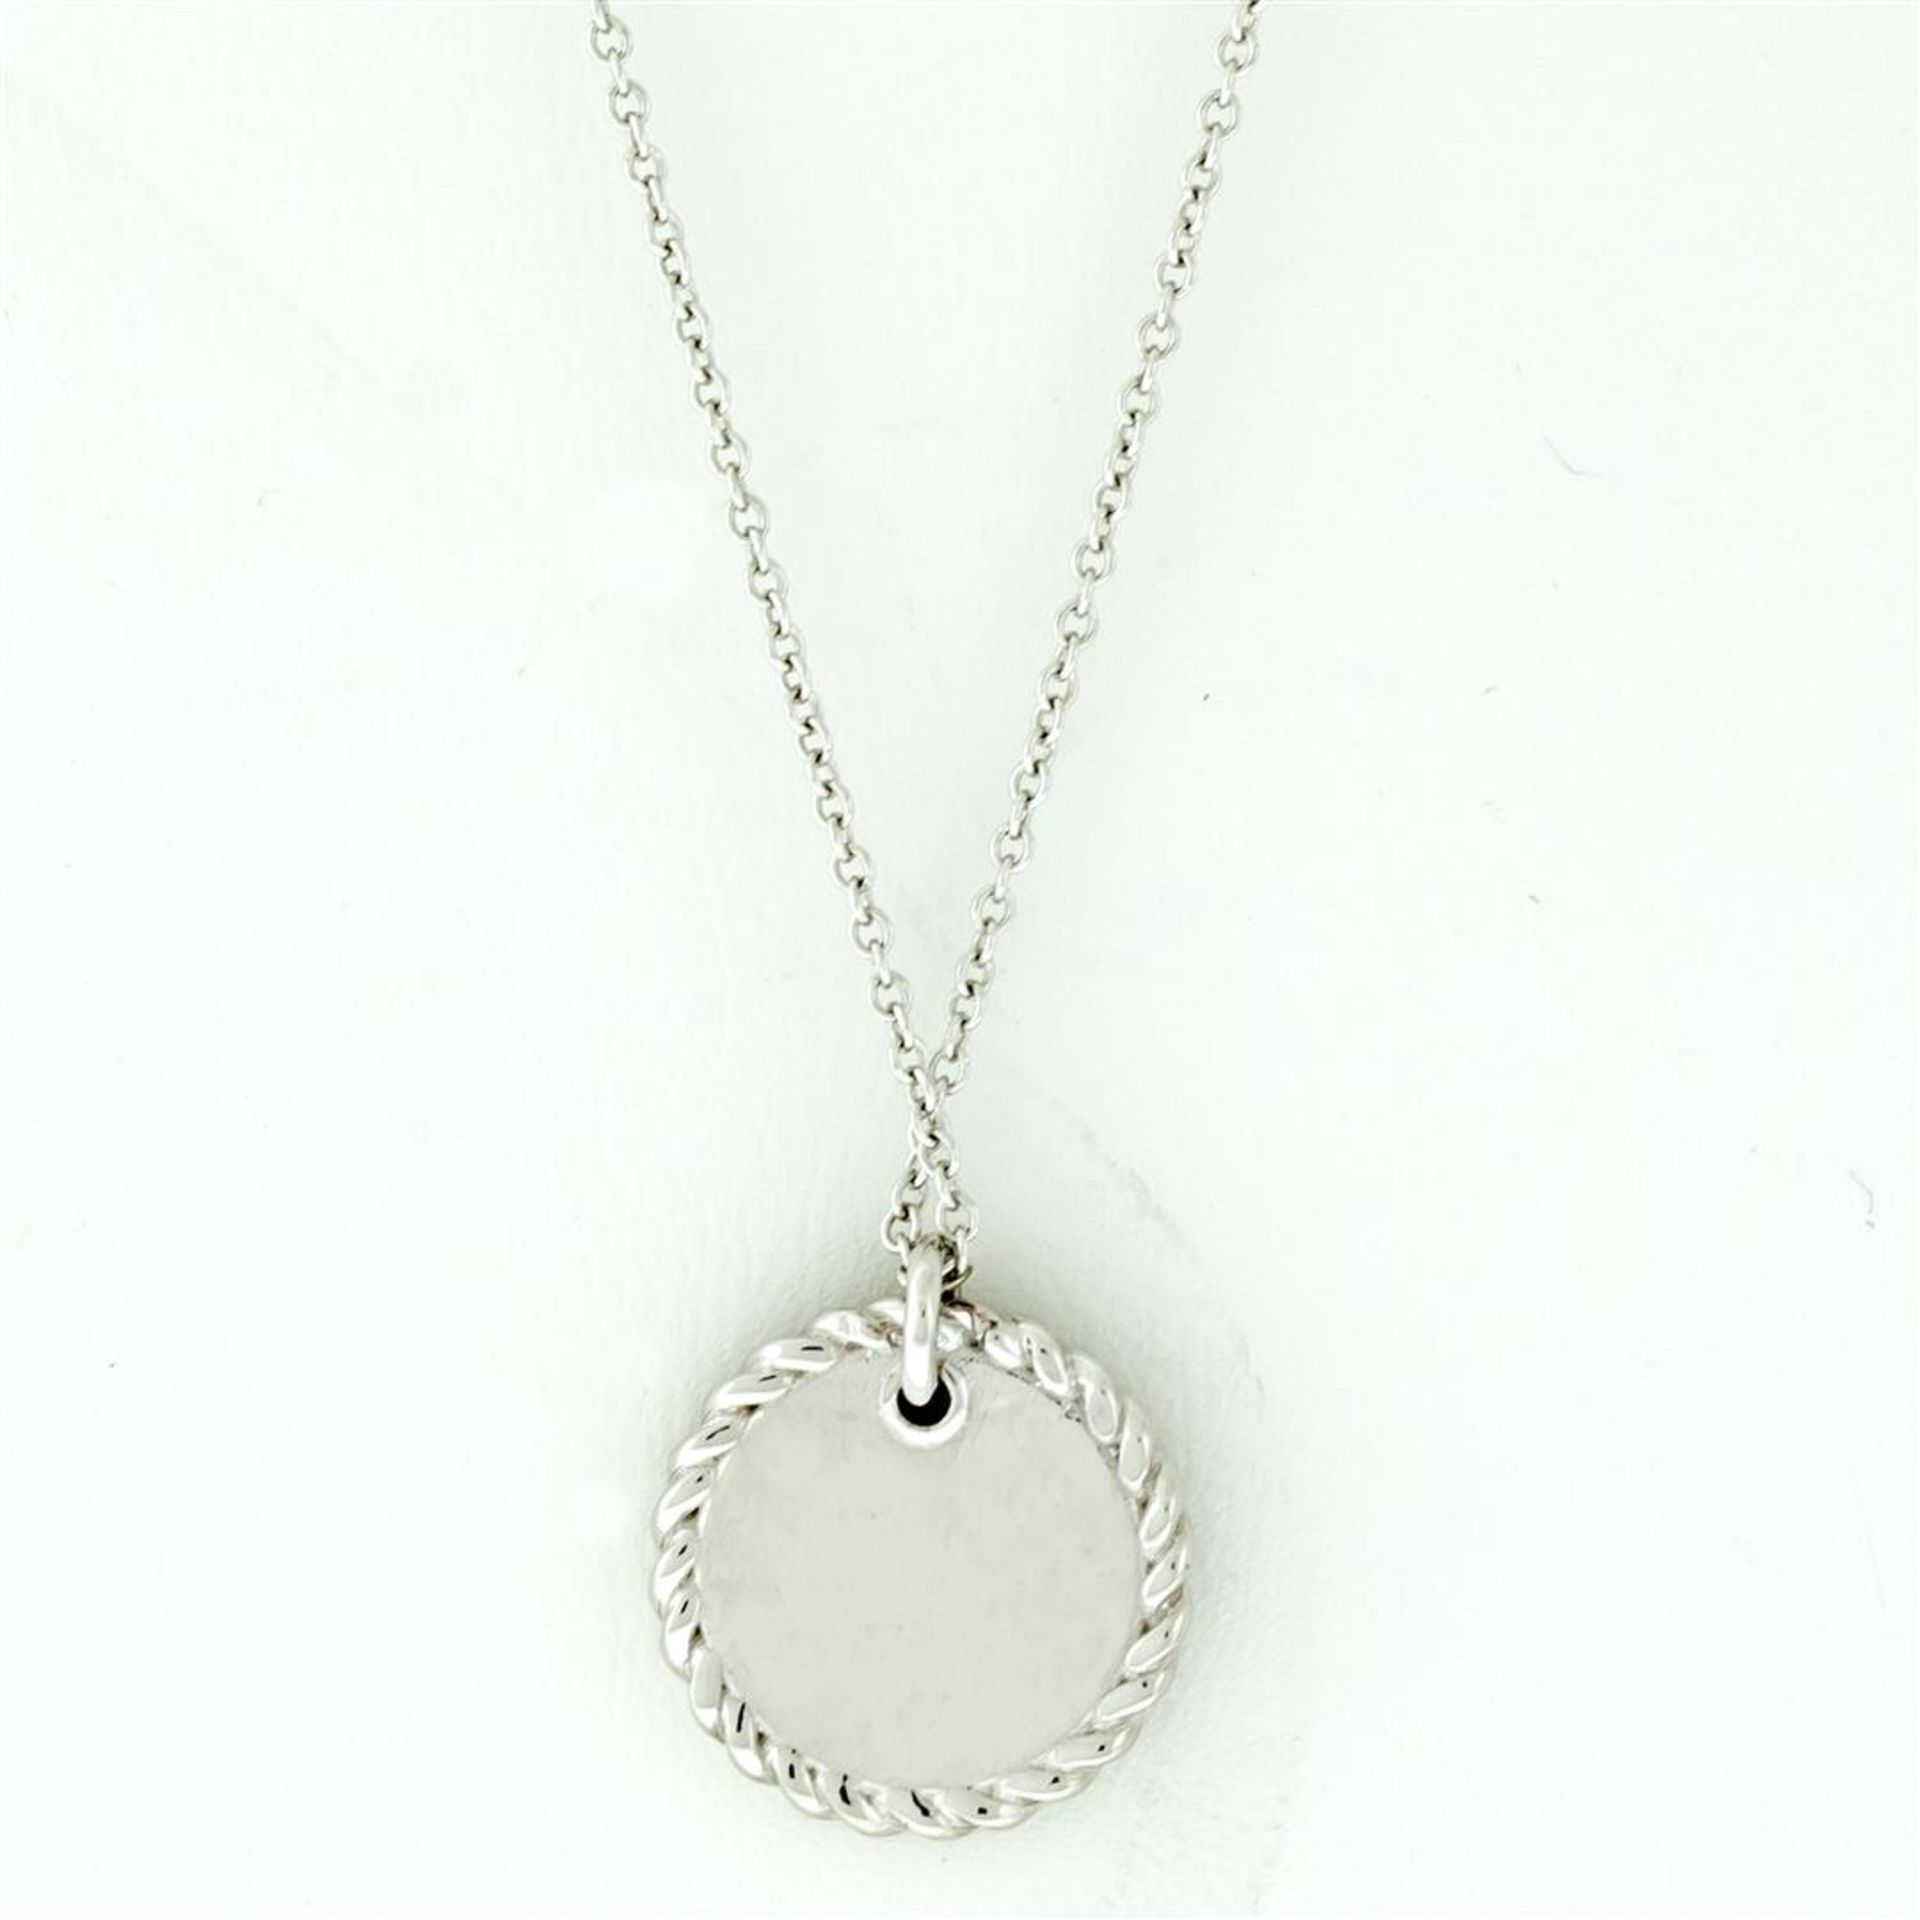 New 18k White Gold Diamond Cable Pendant with with 18K White Gold Chain - Image 7 of 7